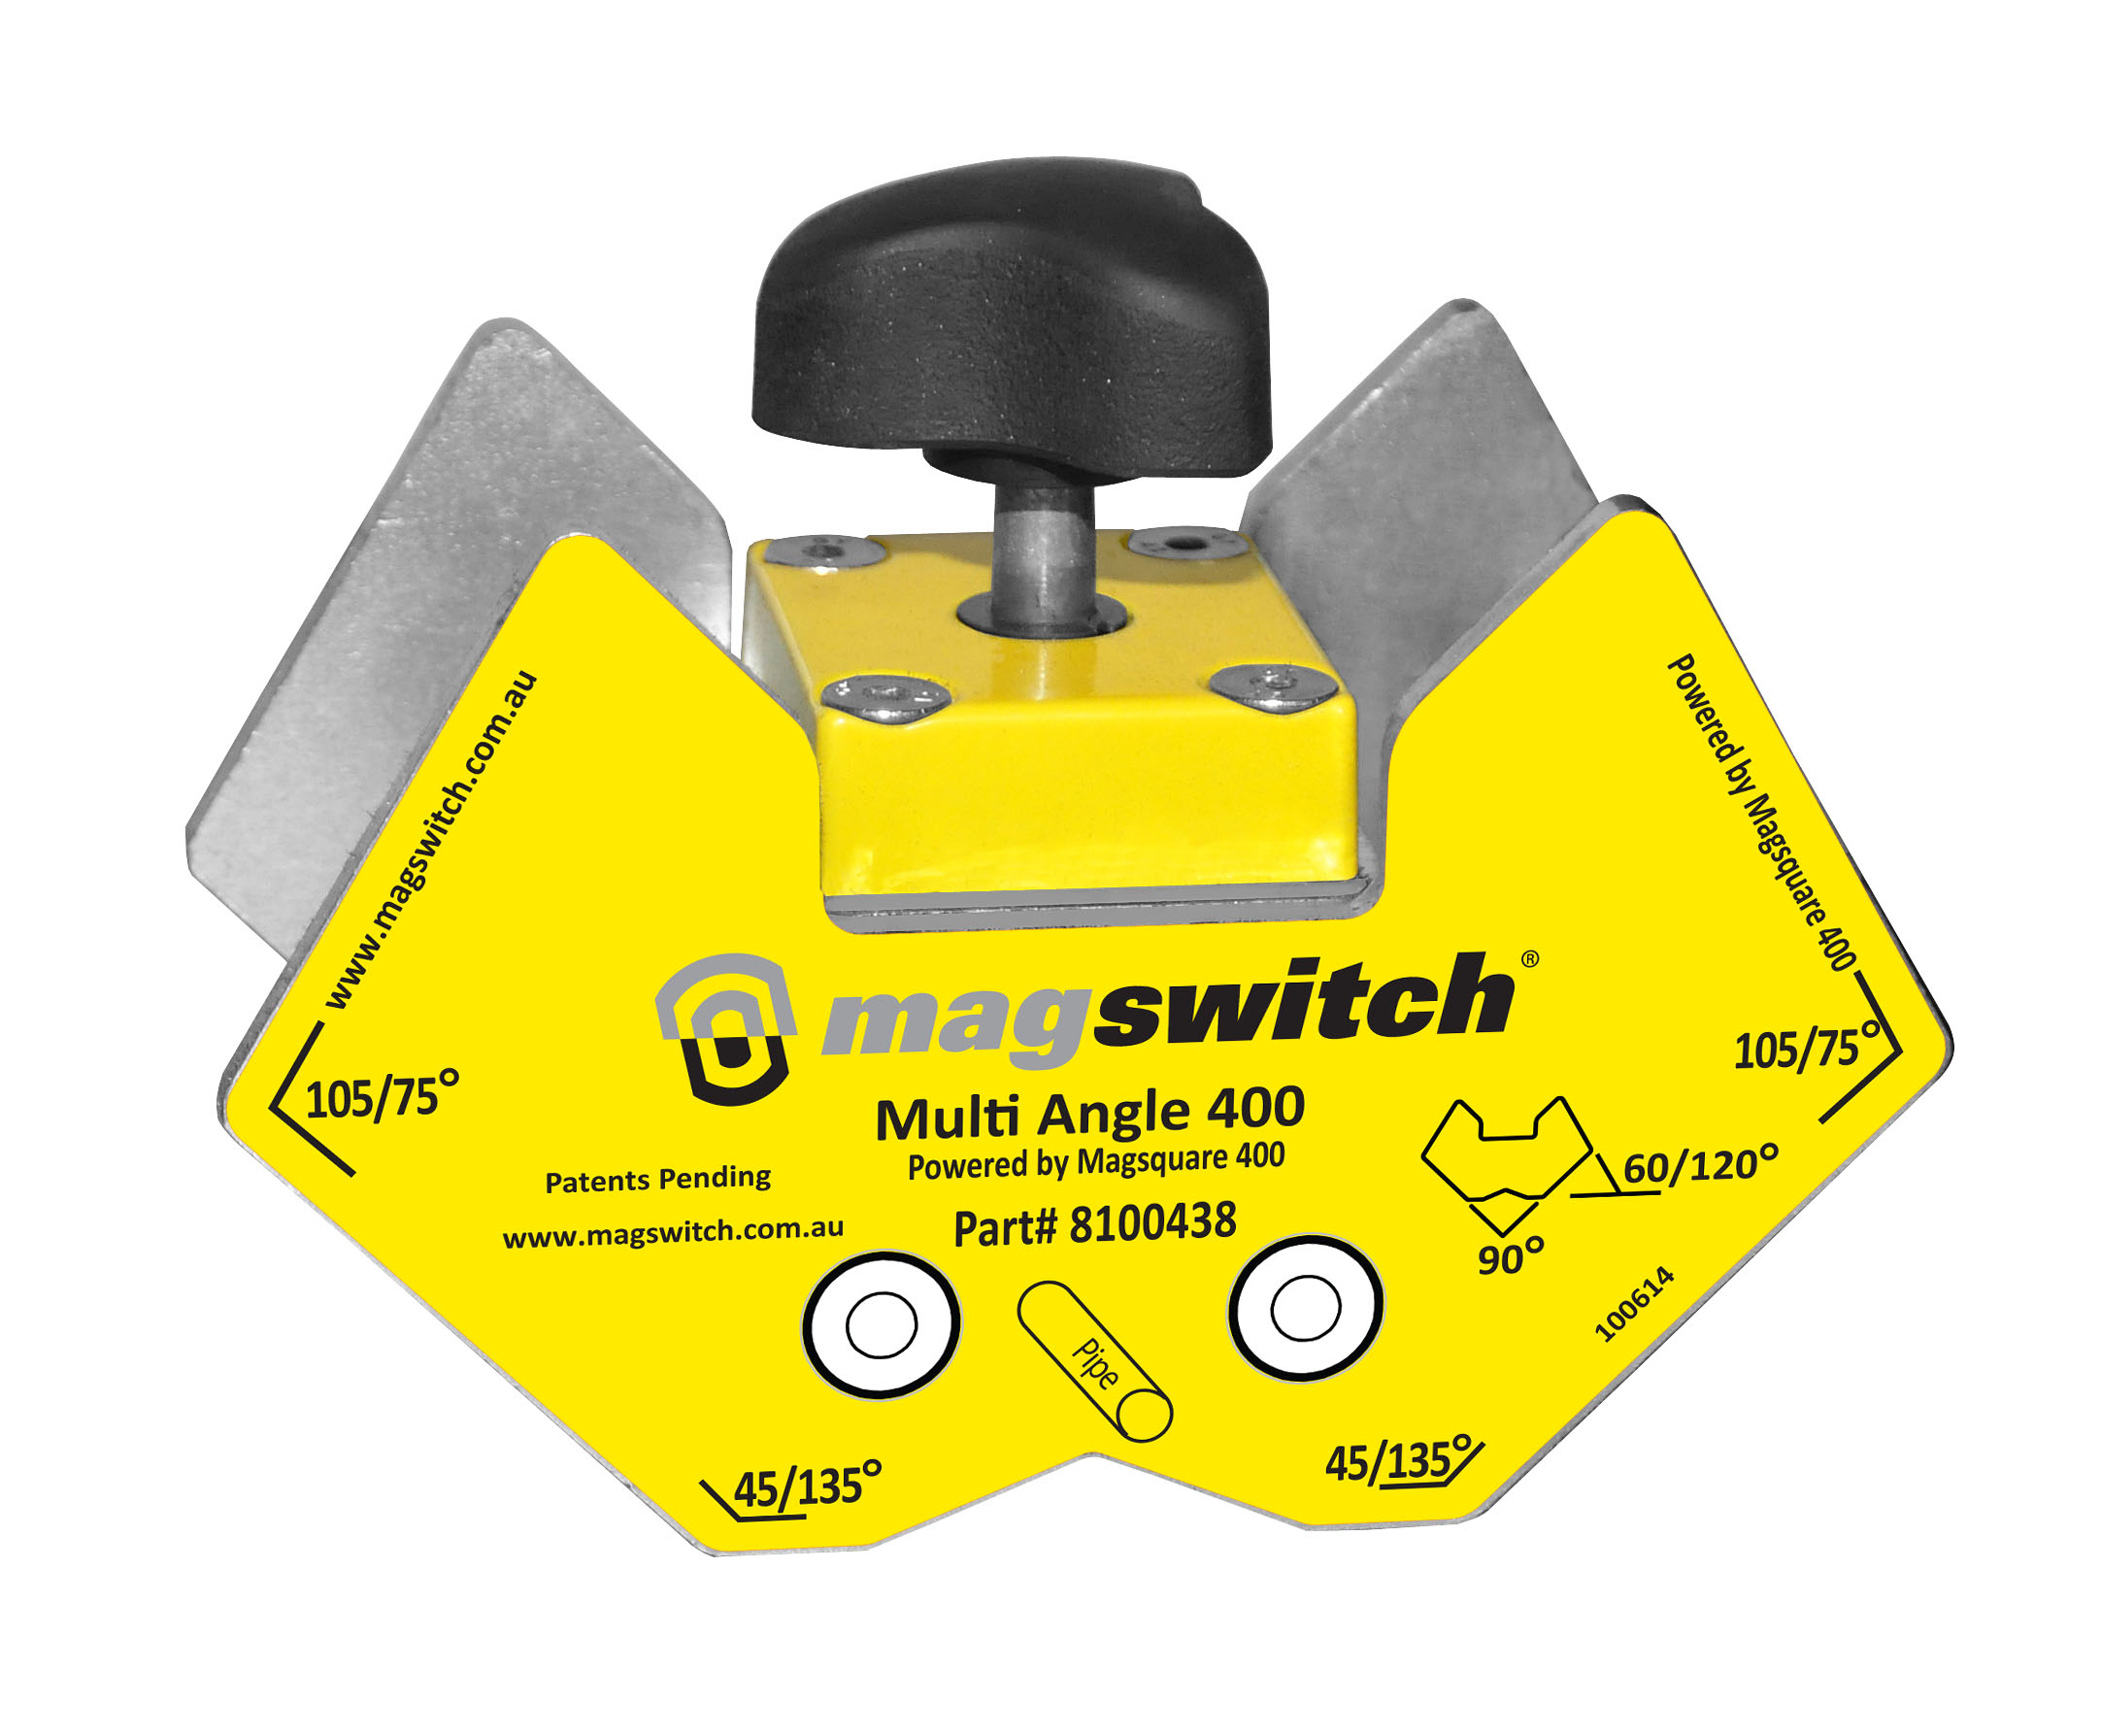 A Magswitch multi angle magnetic tool for welding and fabrication